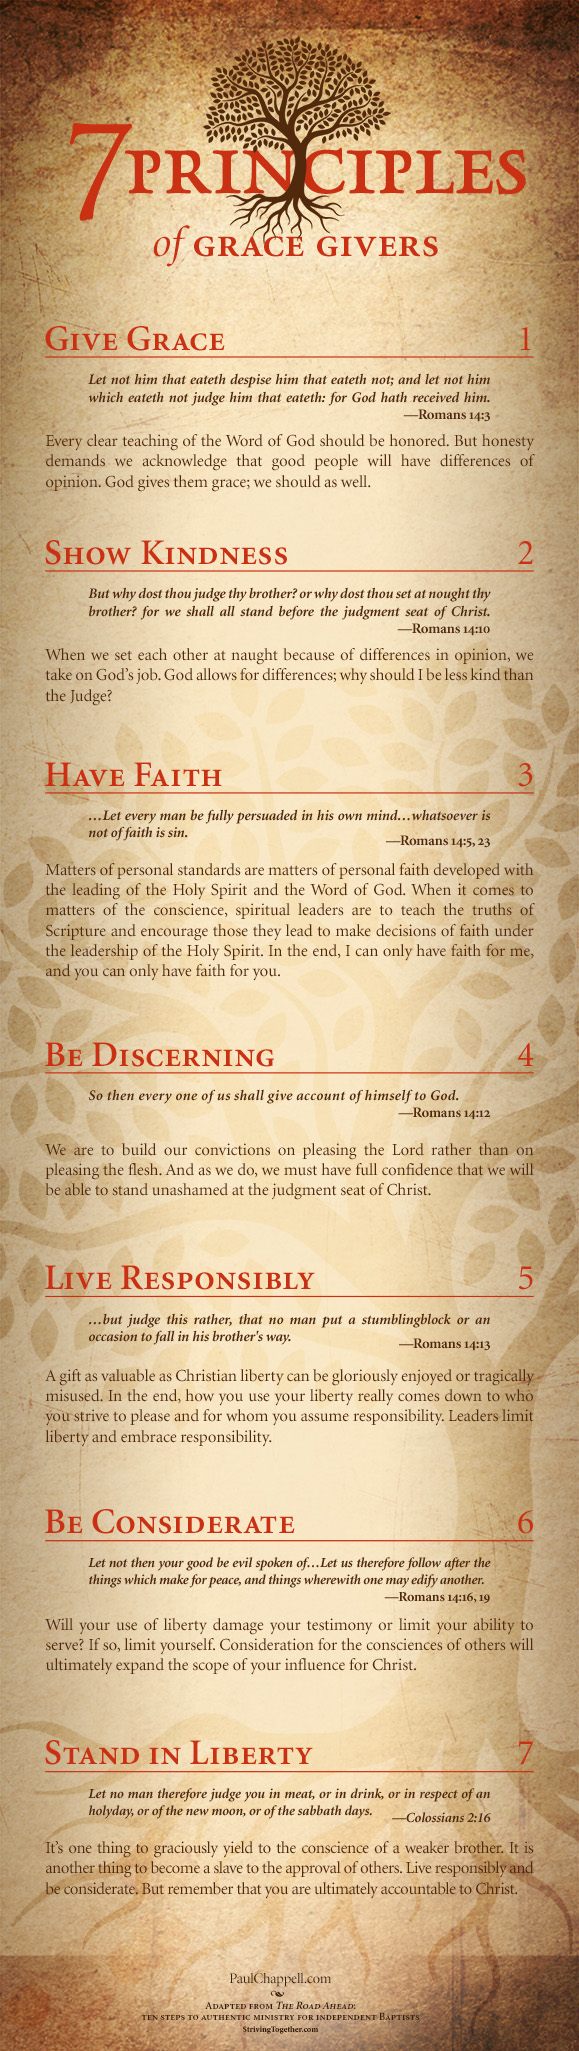 Principles of Grace Givers